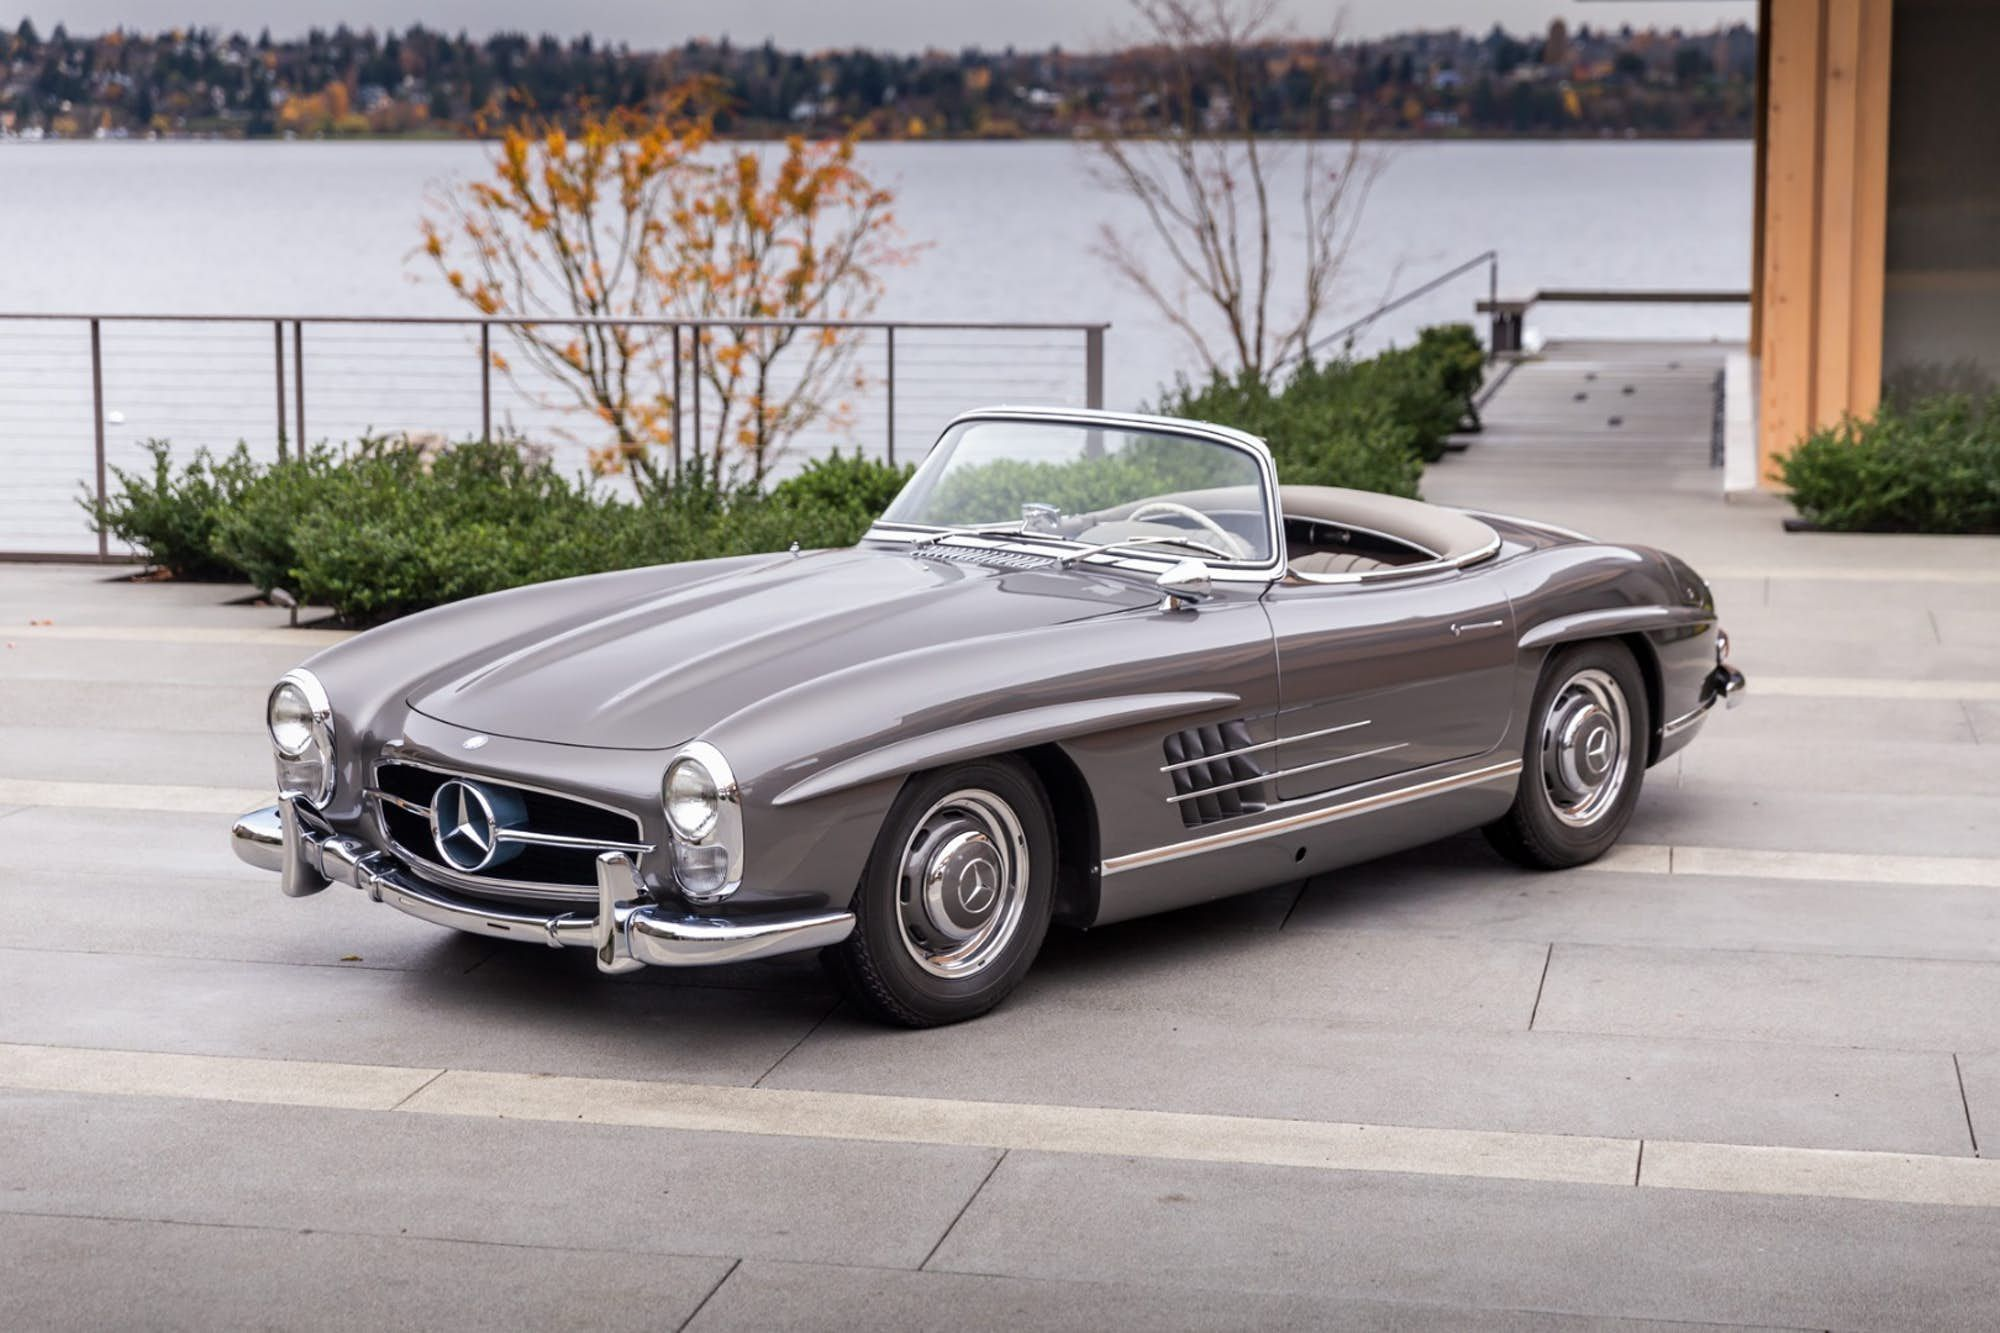 Full Results Amelia Island Auctions Every Sale Price And High Bid For Every Car Mercedes Benz 300 Mercedes Benz Classic Mercedes Benz Cars